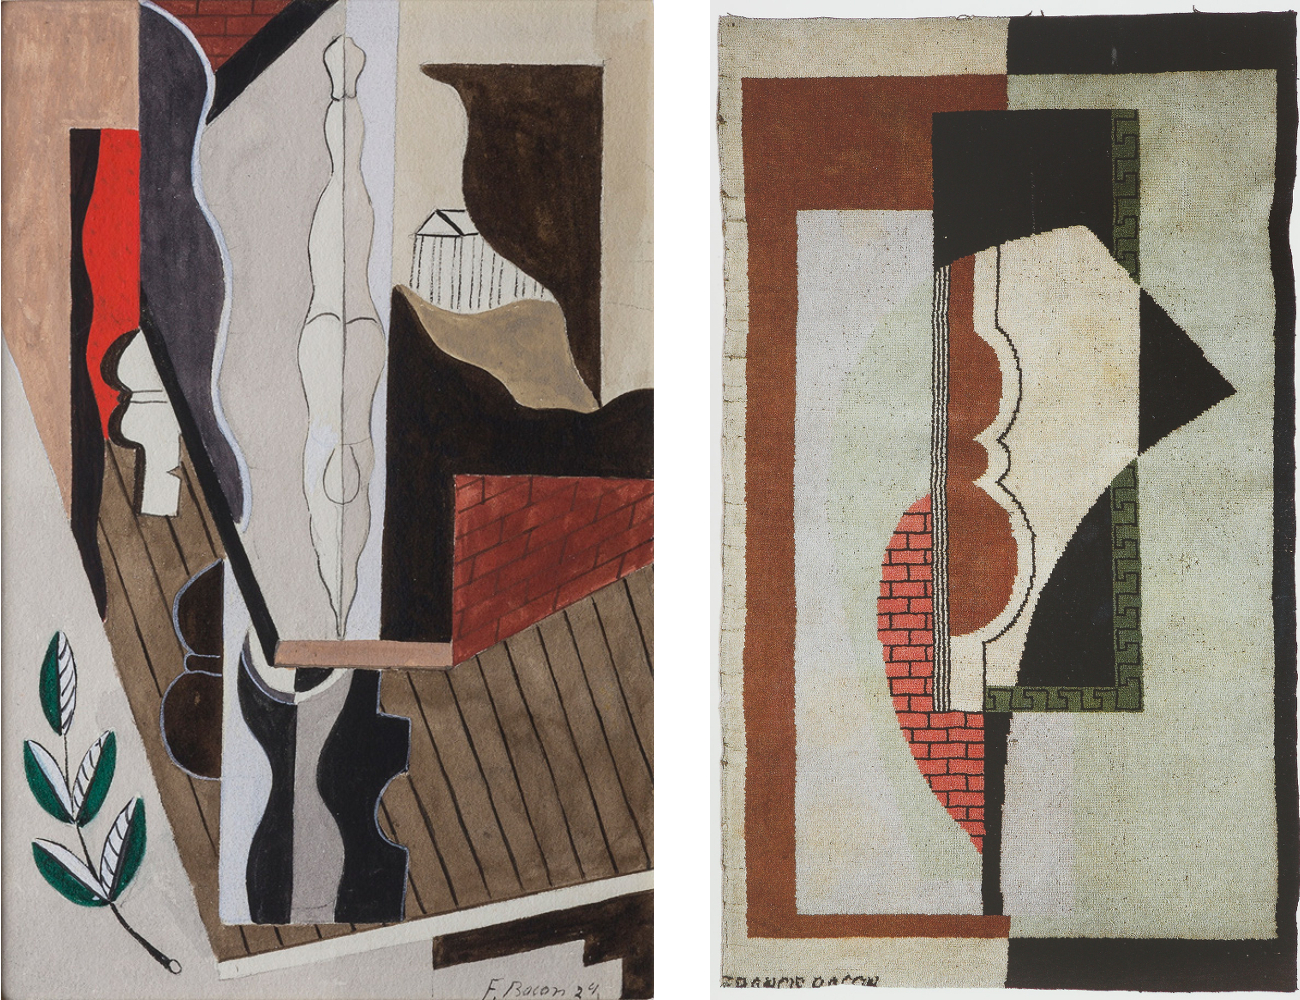 Francis Bacon's 'Watercolour', 1929 and Rug, Composition c.1929.